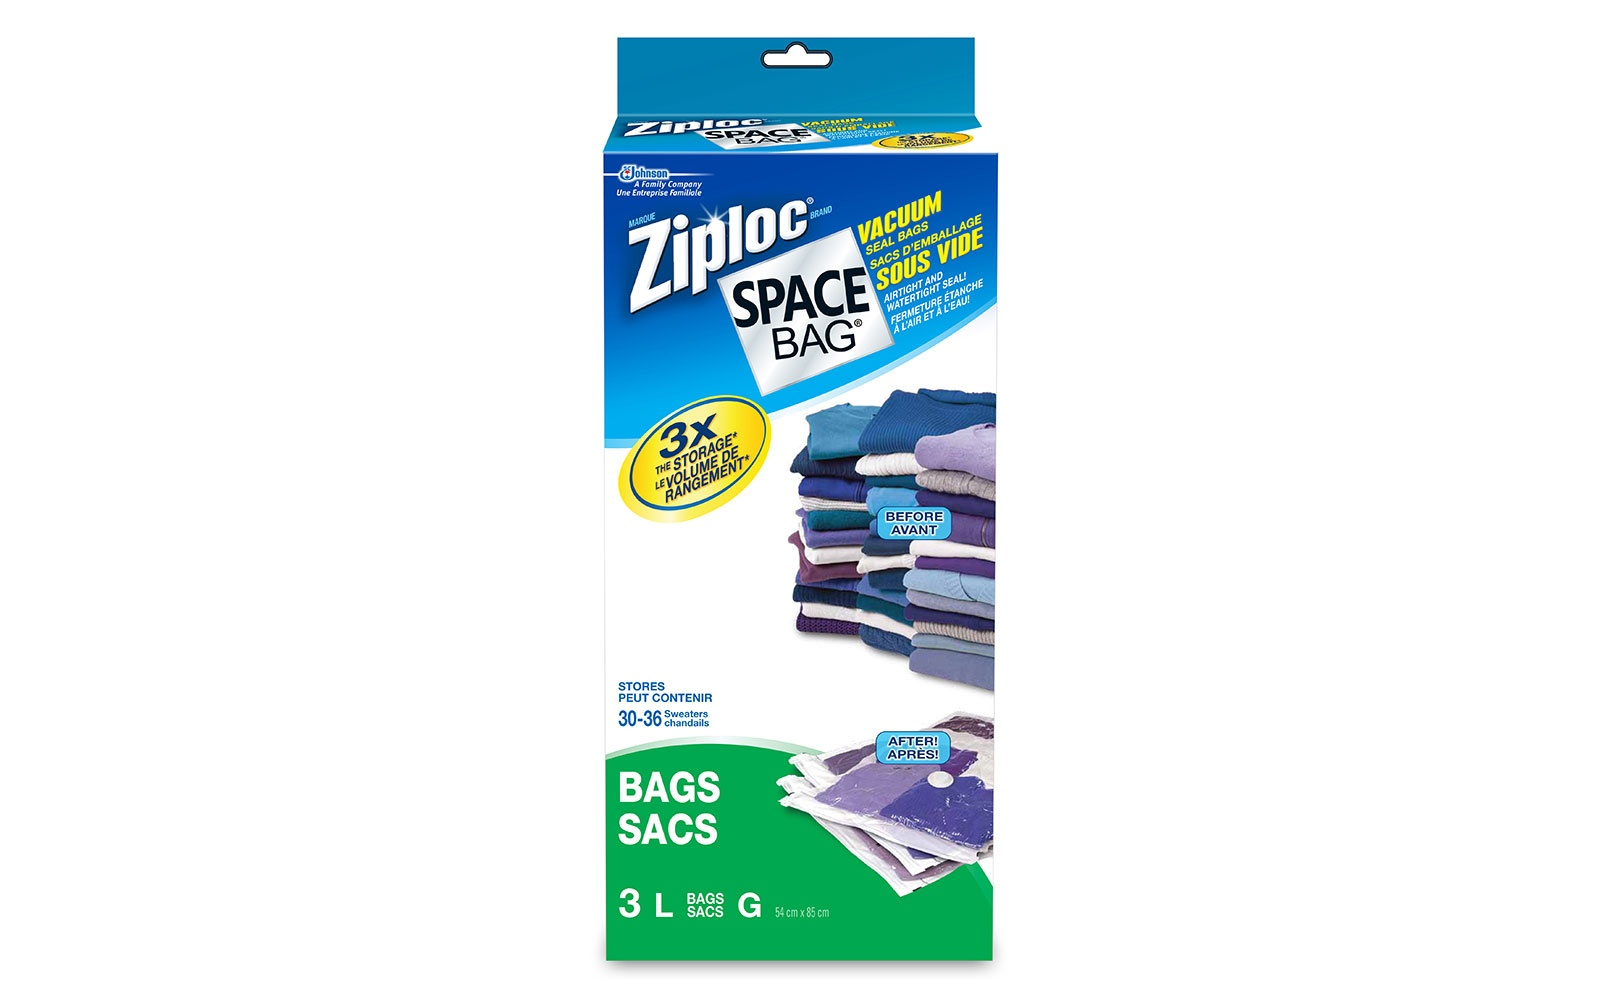 Ziploc space saving suitcase travel bags